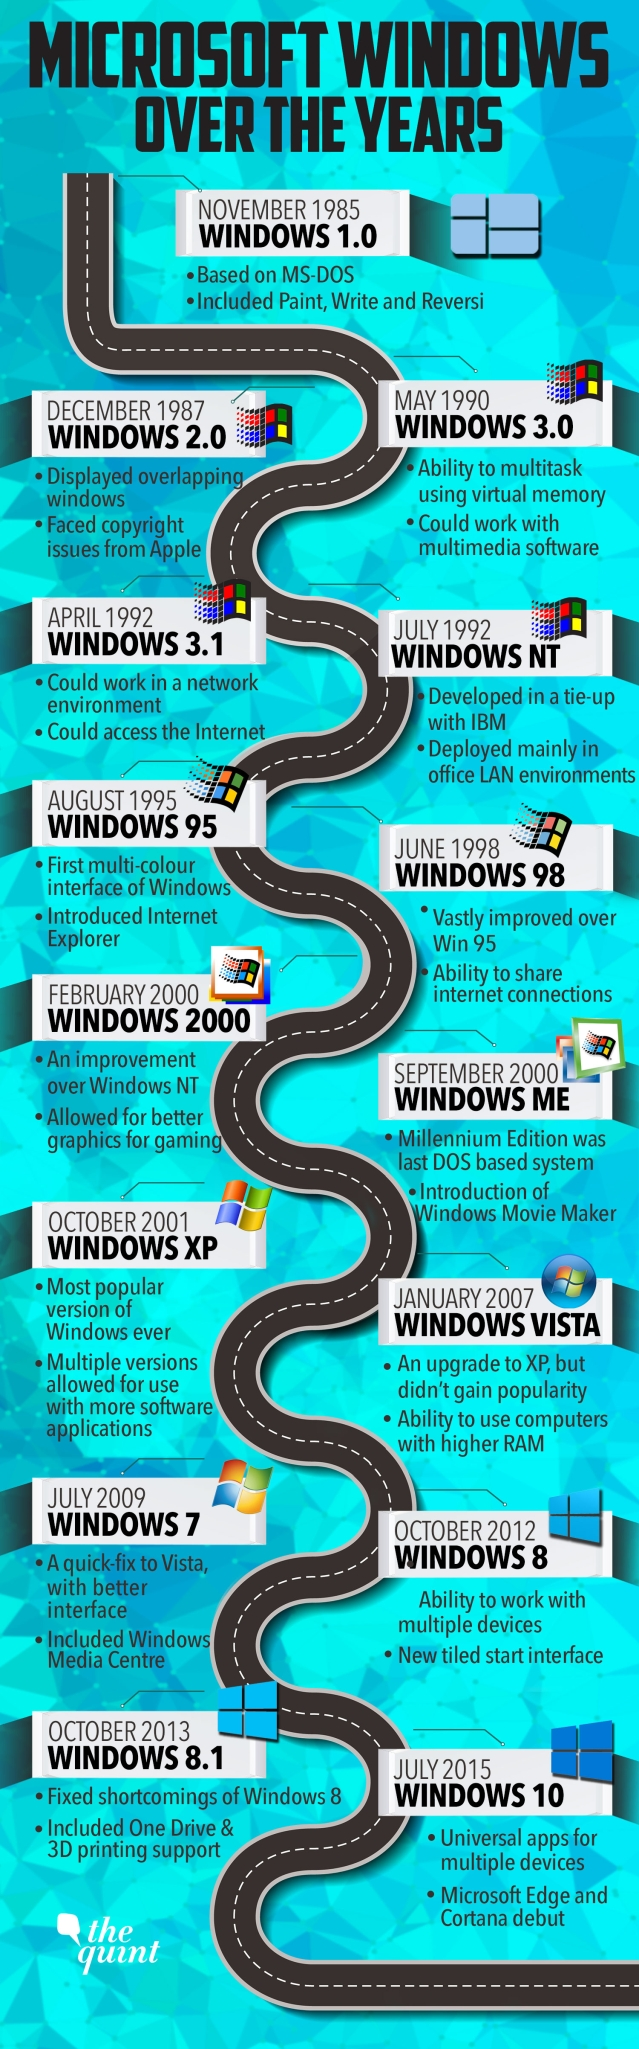 An illustration from the launch of the first Windows in 1983 to the current Windows 10